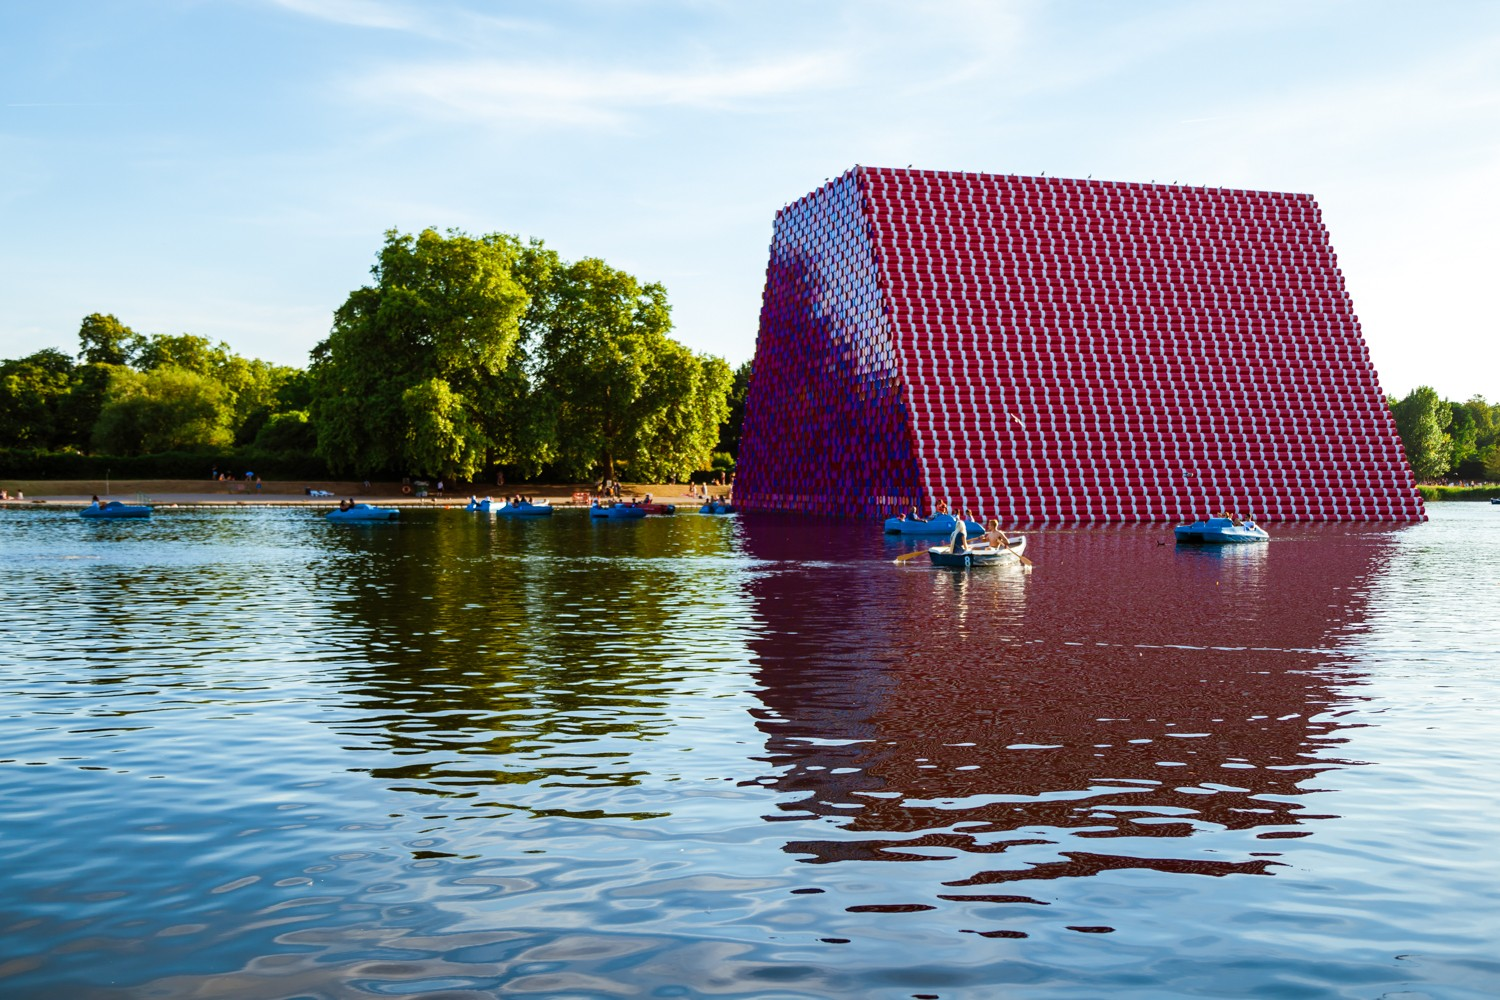 THE LONDON MASTABA by CHRISTO